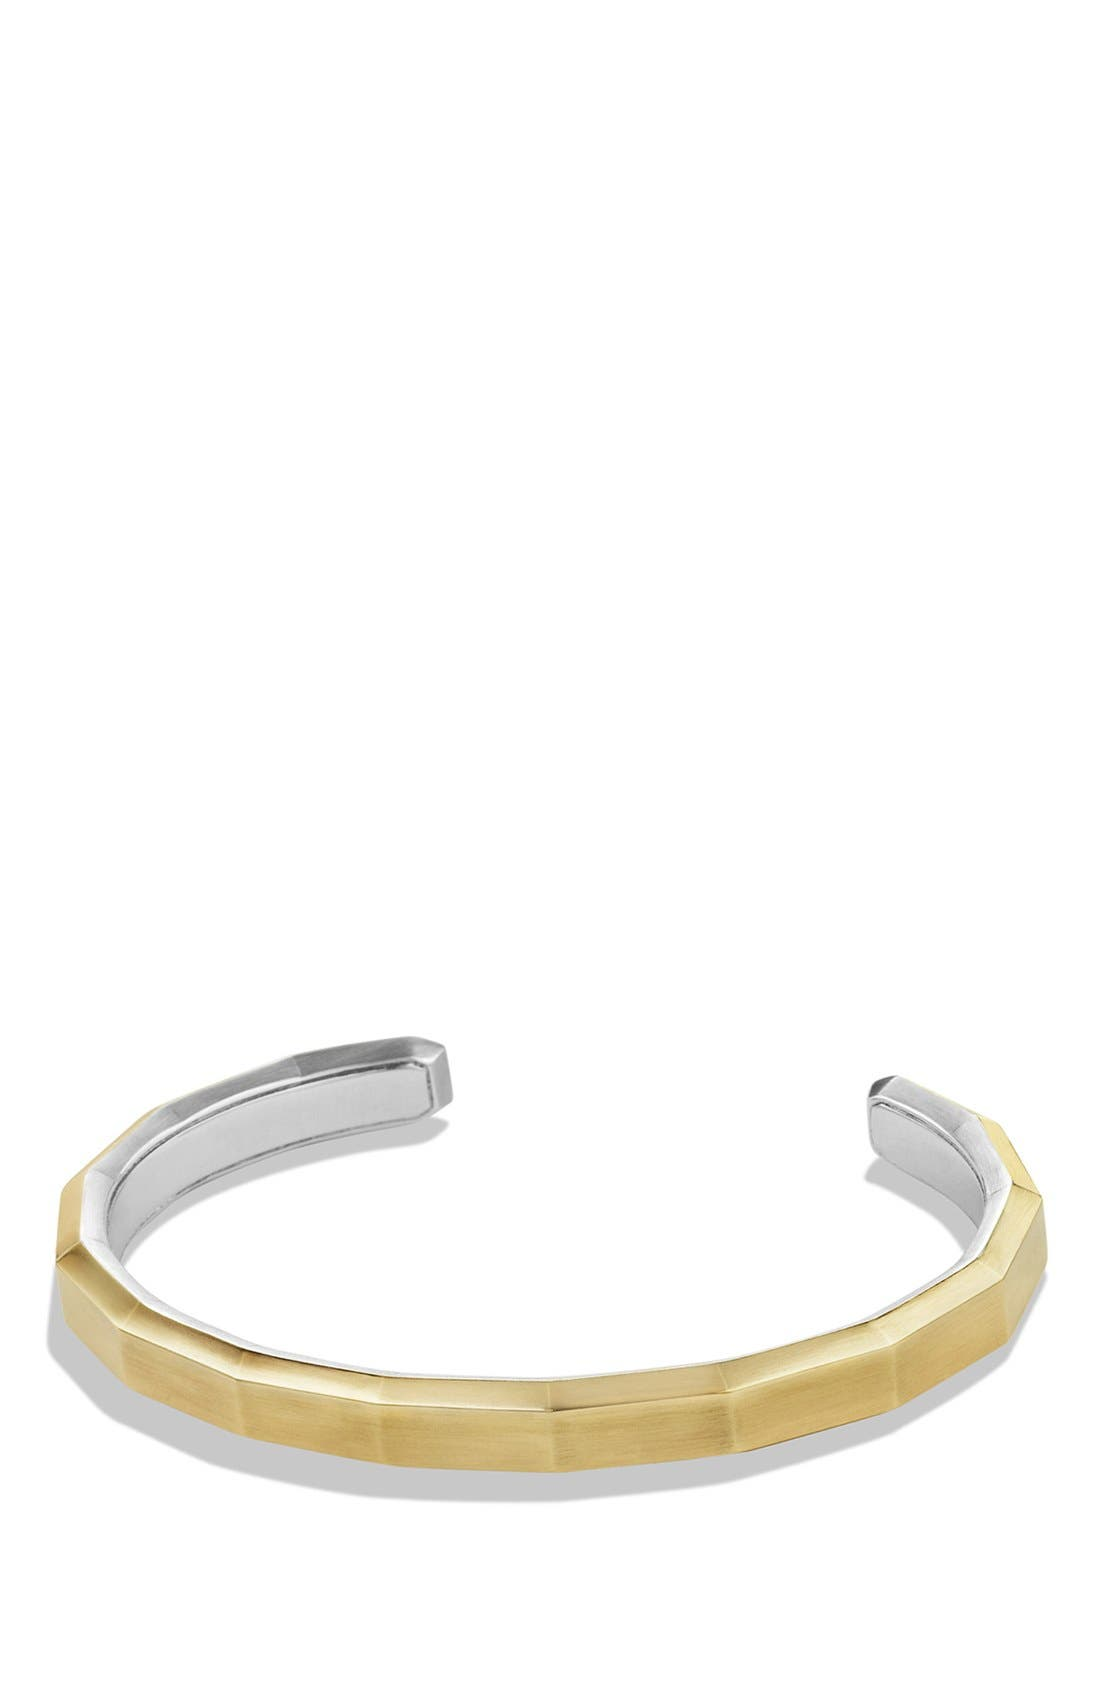 'Faceted Metal' Cuff Bracelet with 18k Gold,                         Main,                         color, 041